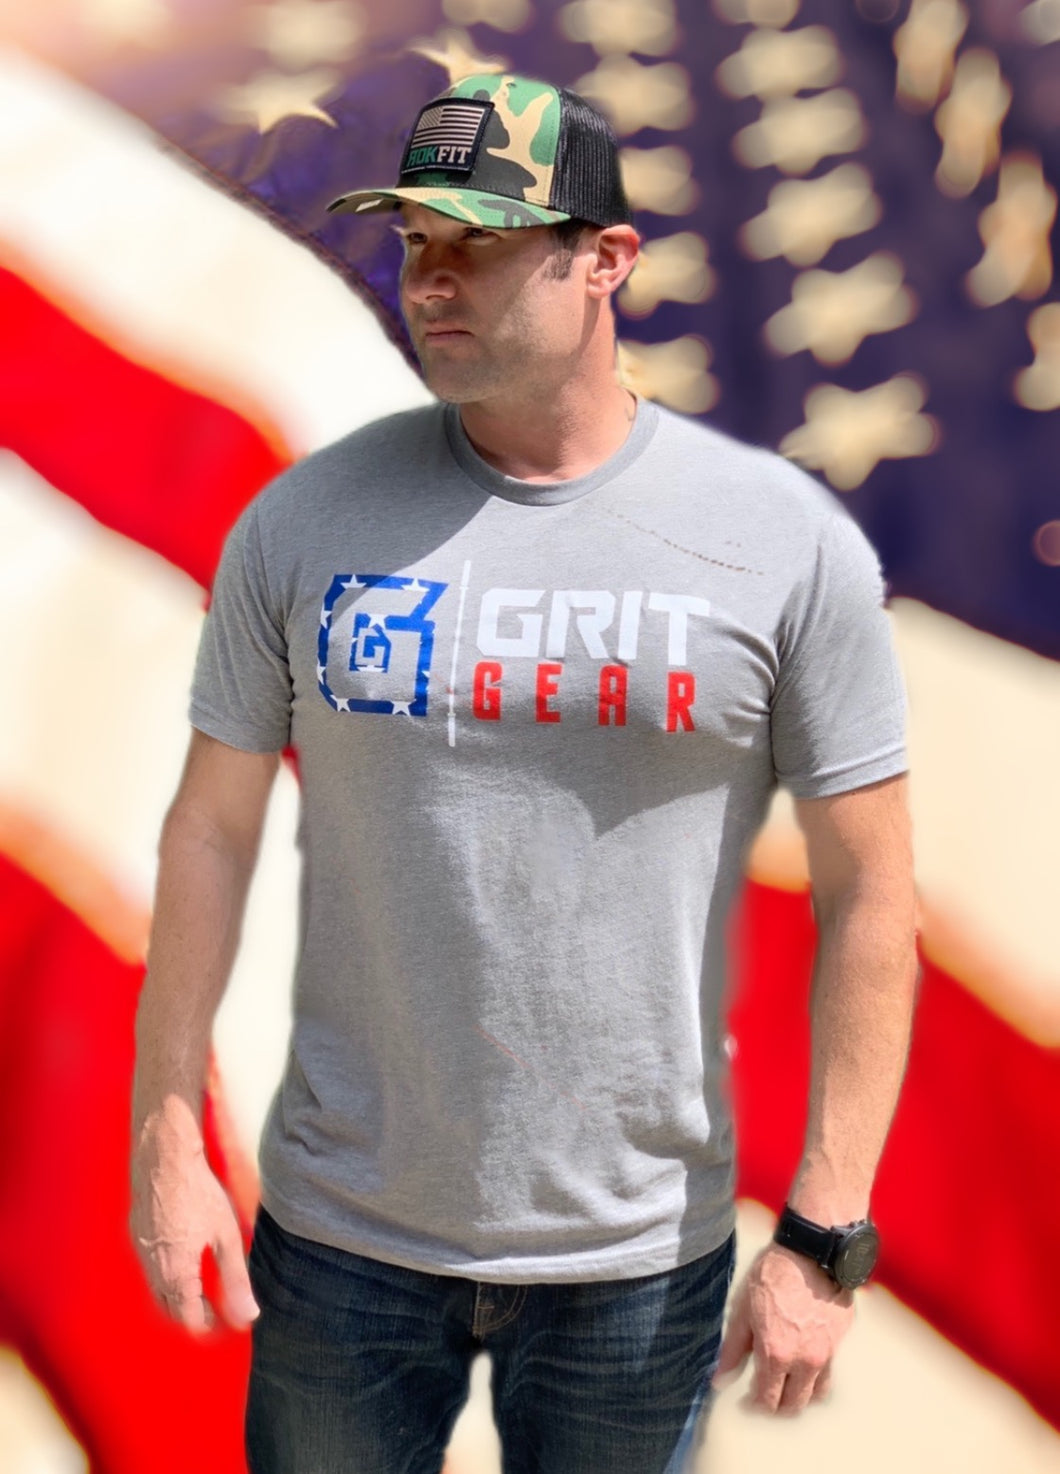 Grit Gear Stars and Stripes